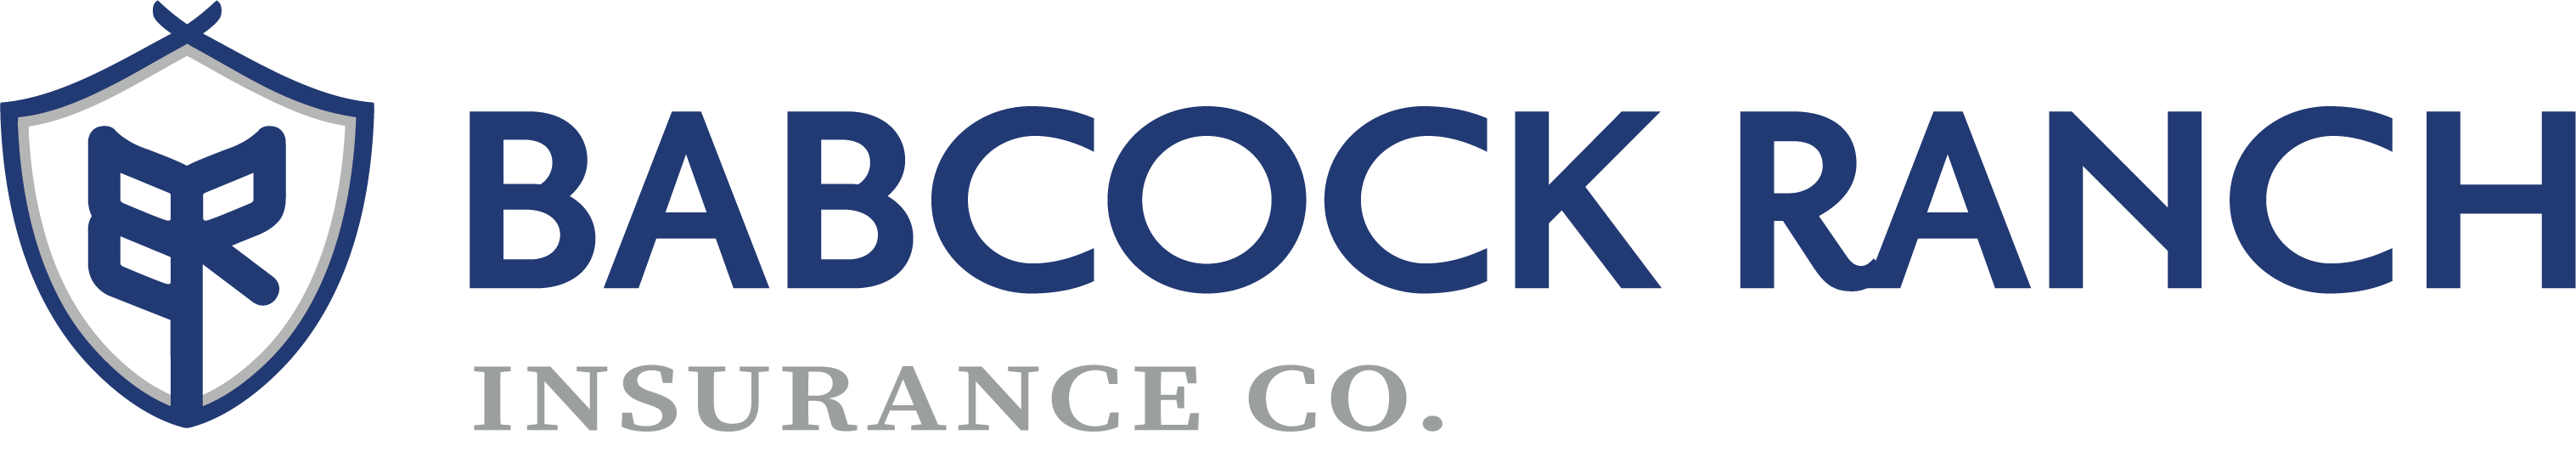 Babcock Ranch Insurance Company Logo